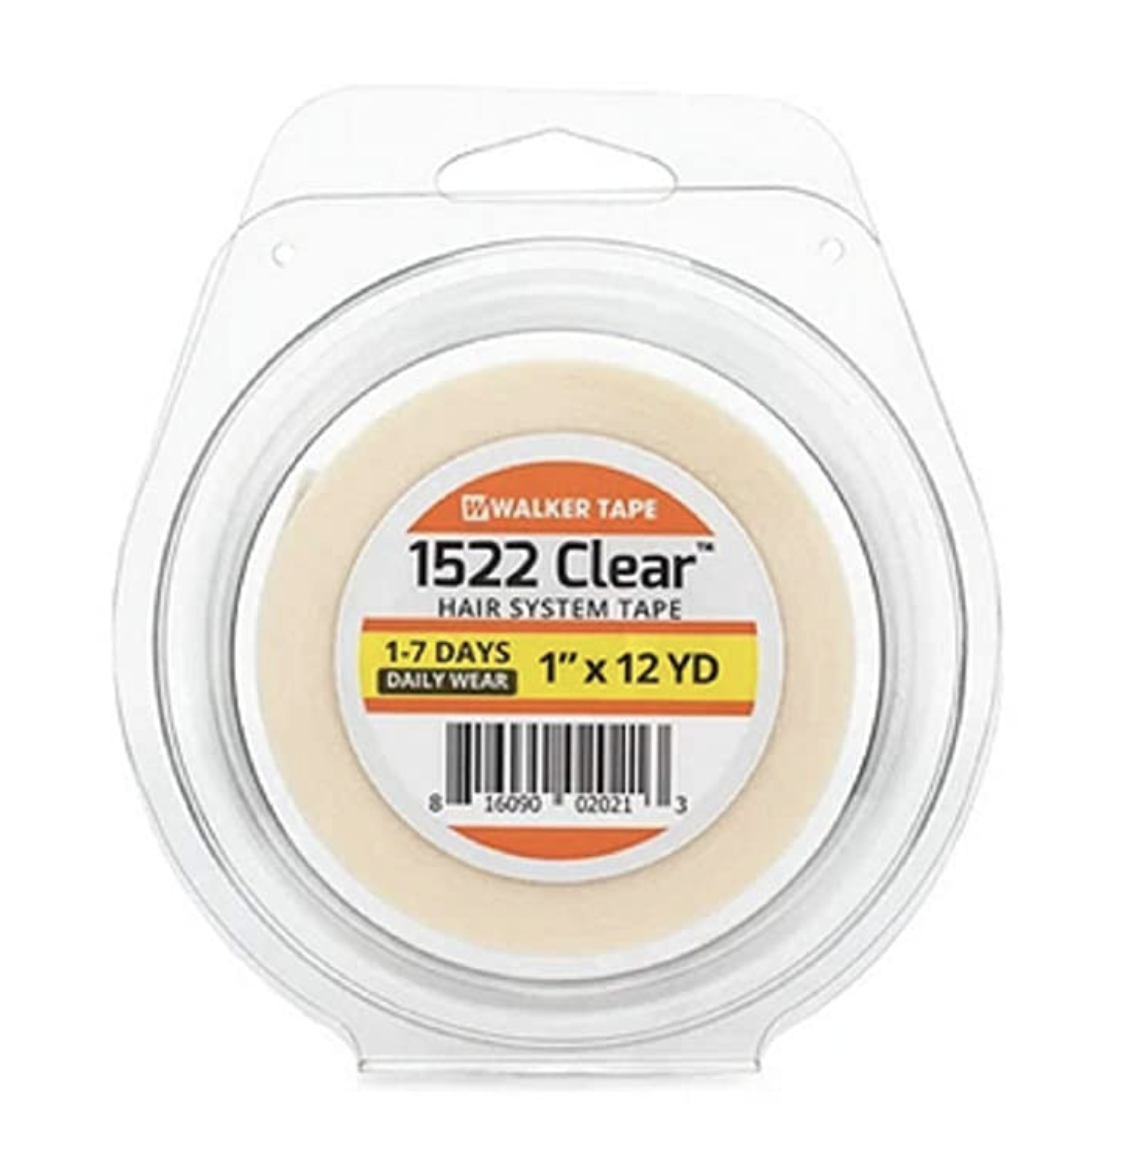 1522 CLEAR Tape -  3/4